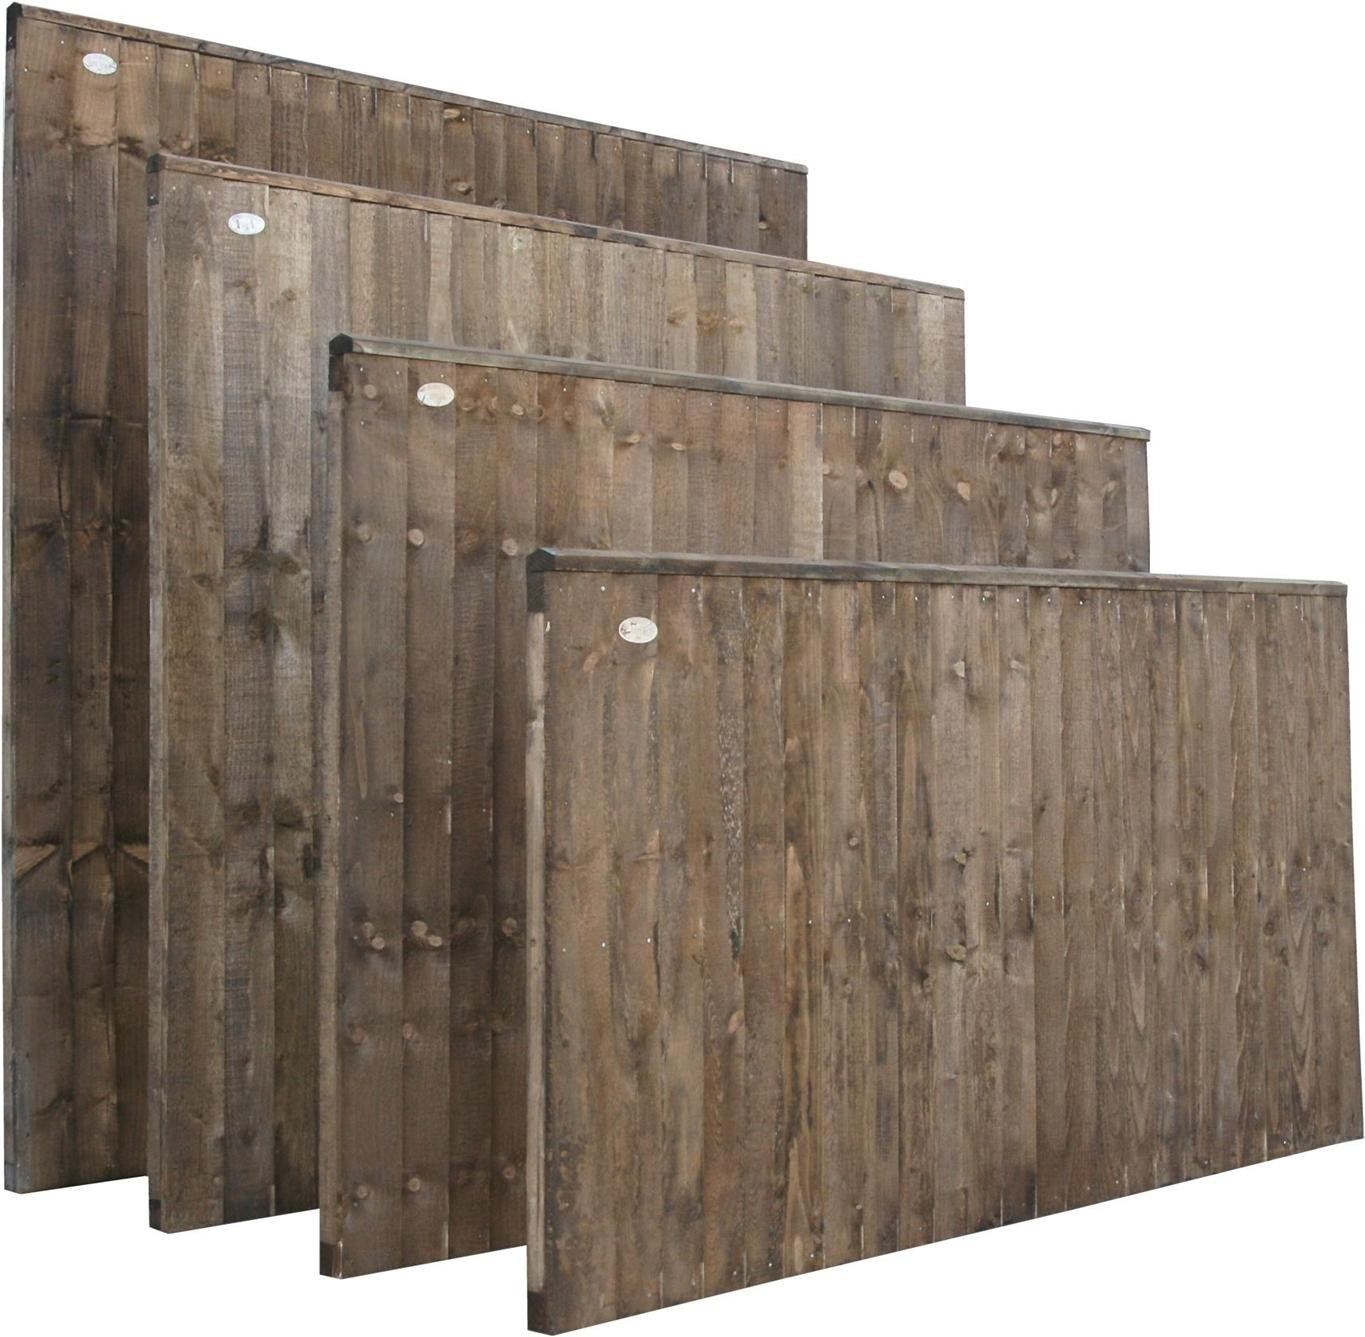 Featheredge fence panels 6ft x 6ft sb building supplies ltd featheredge fence panels 6ft x 6ft baanklon Image collections